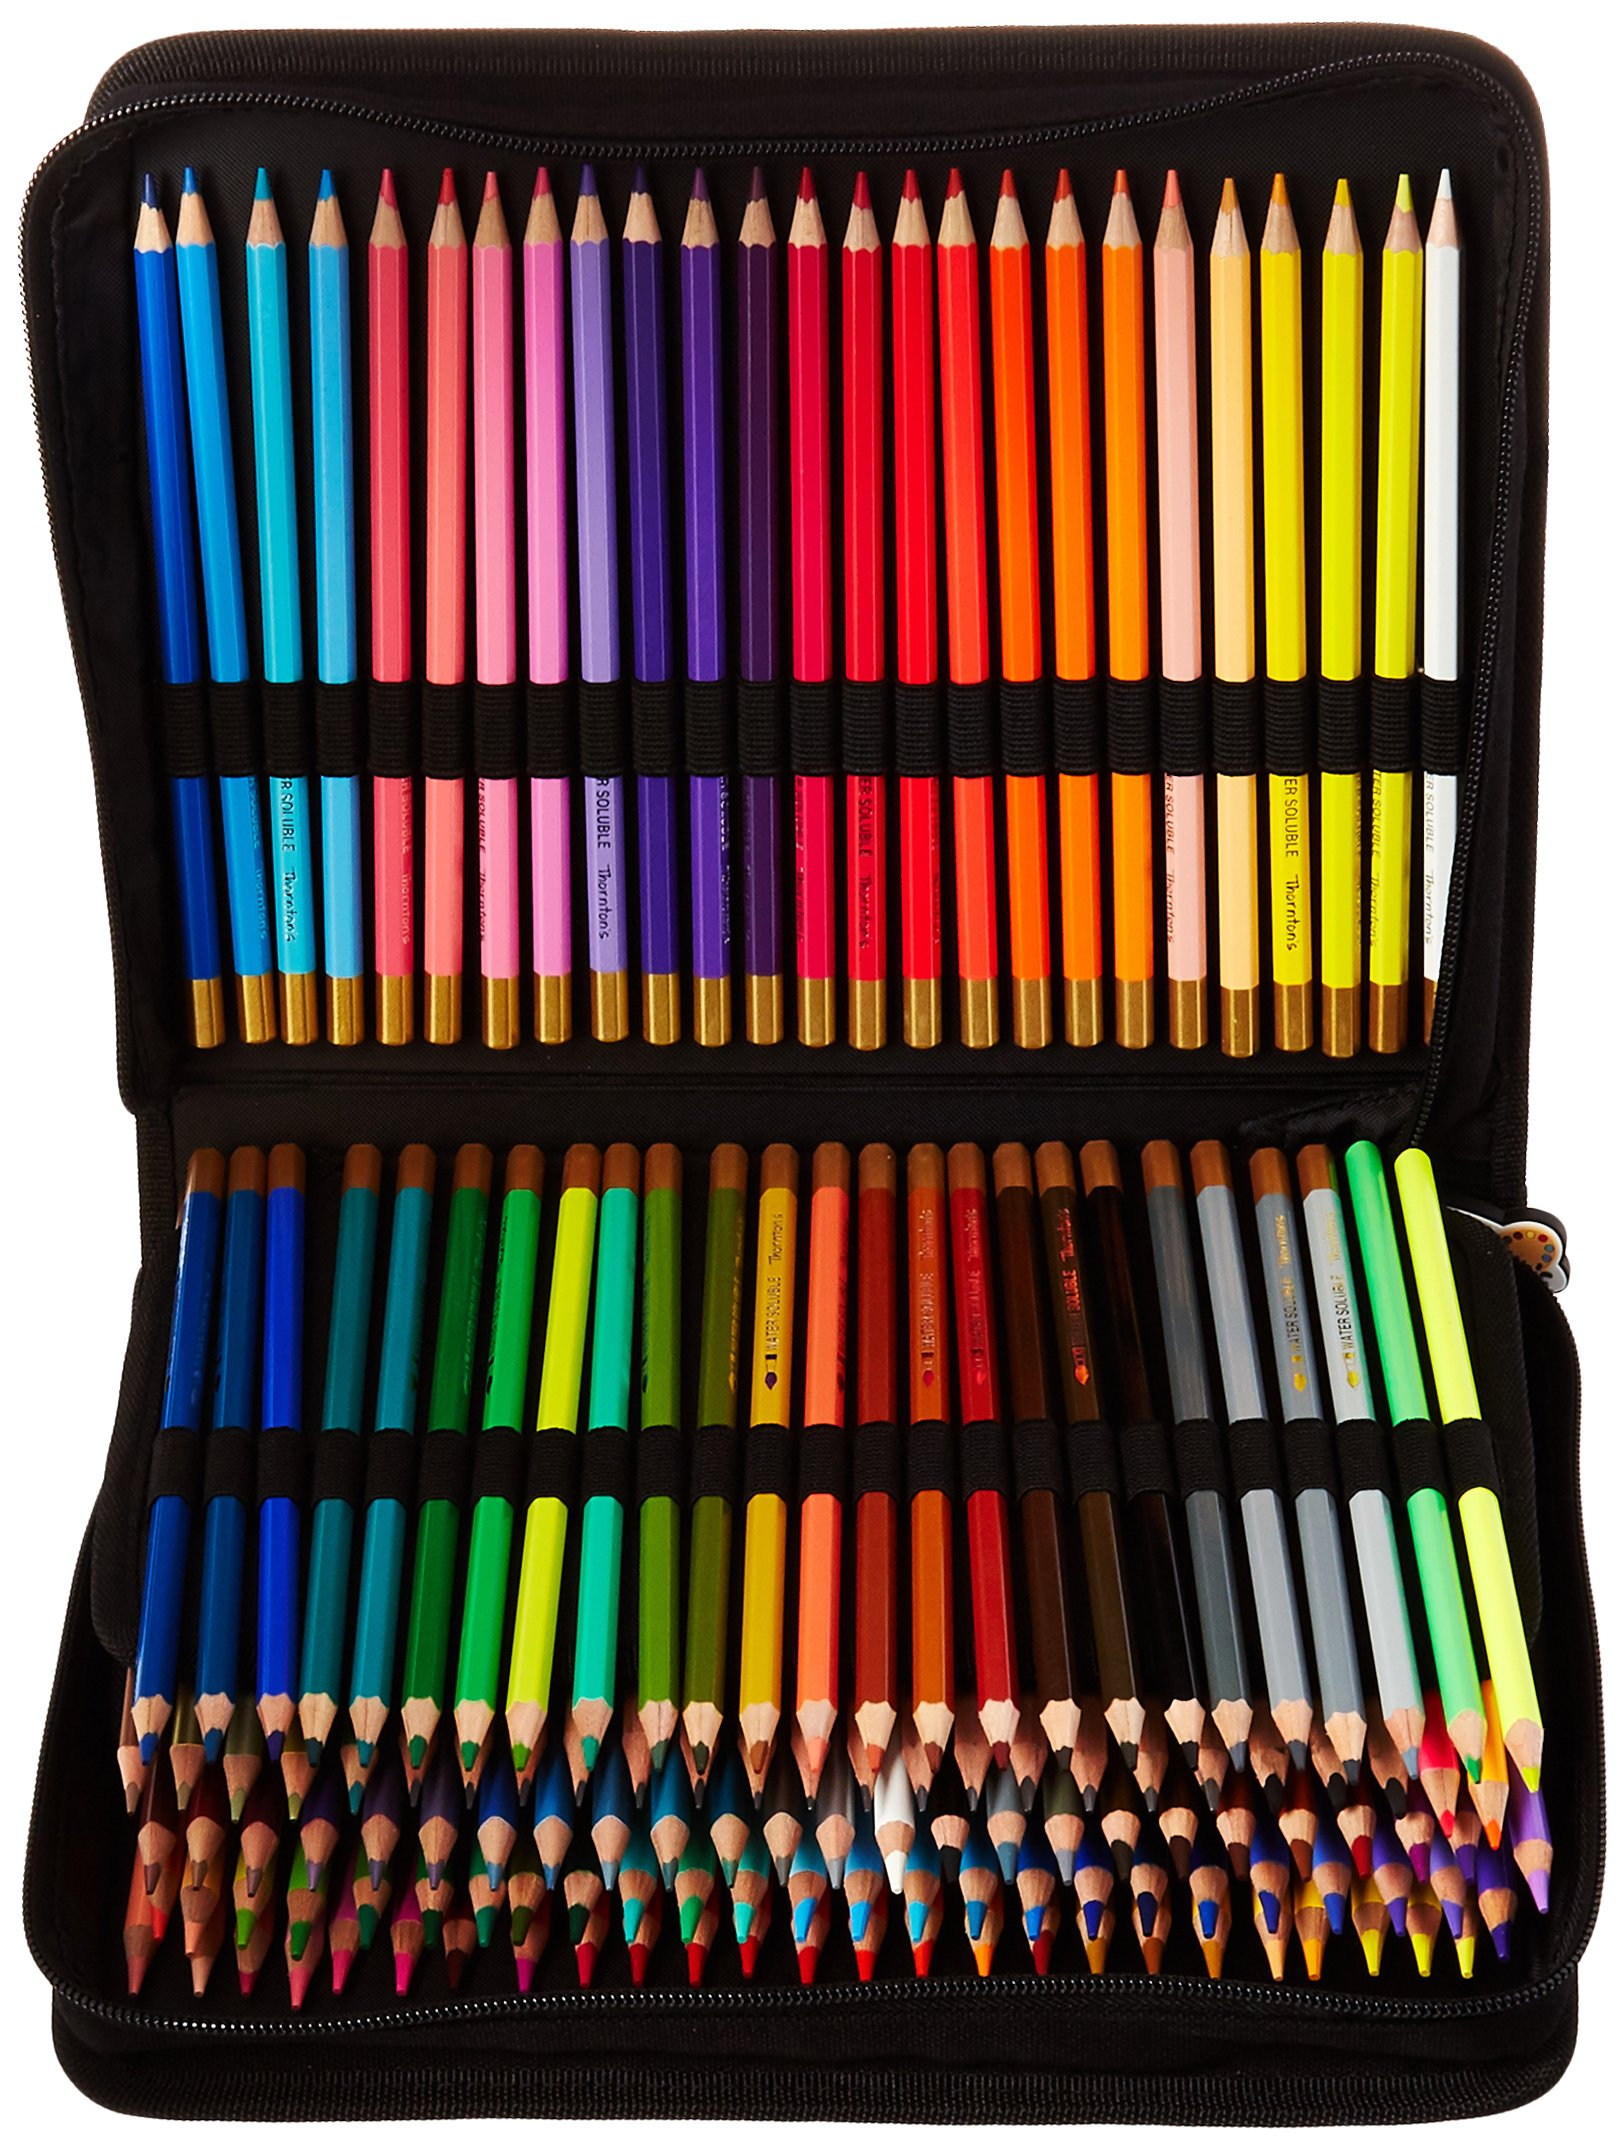 Thornton's Art Supply Premier Premium 150-Piece Artist Pencil Colored Pencil Drawing Sketching Set with Zippered Black Canvas Pencil Case by Thornton's Art Supplies